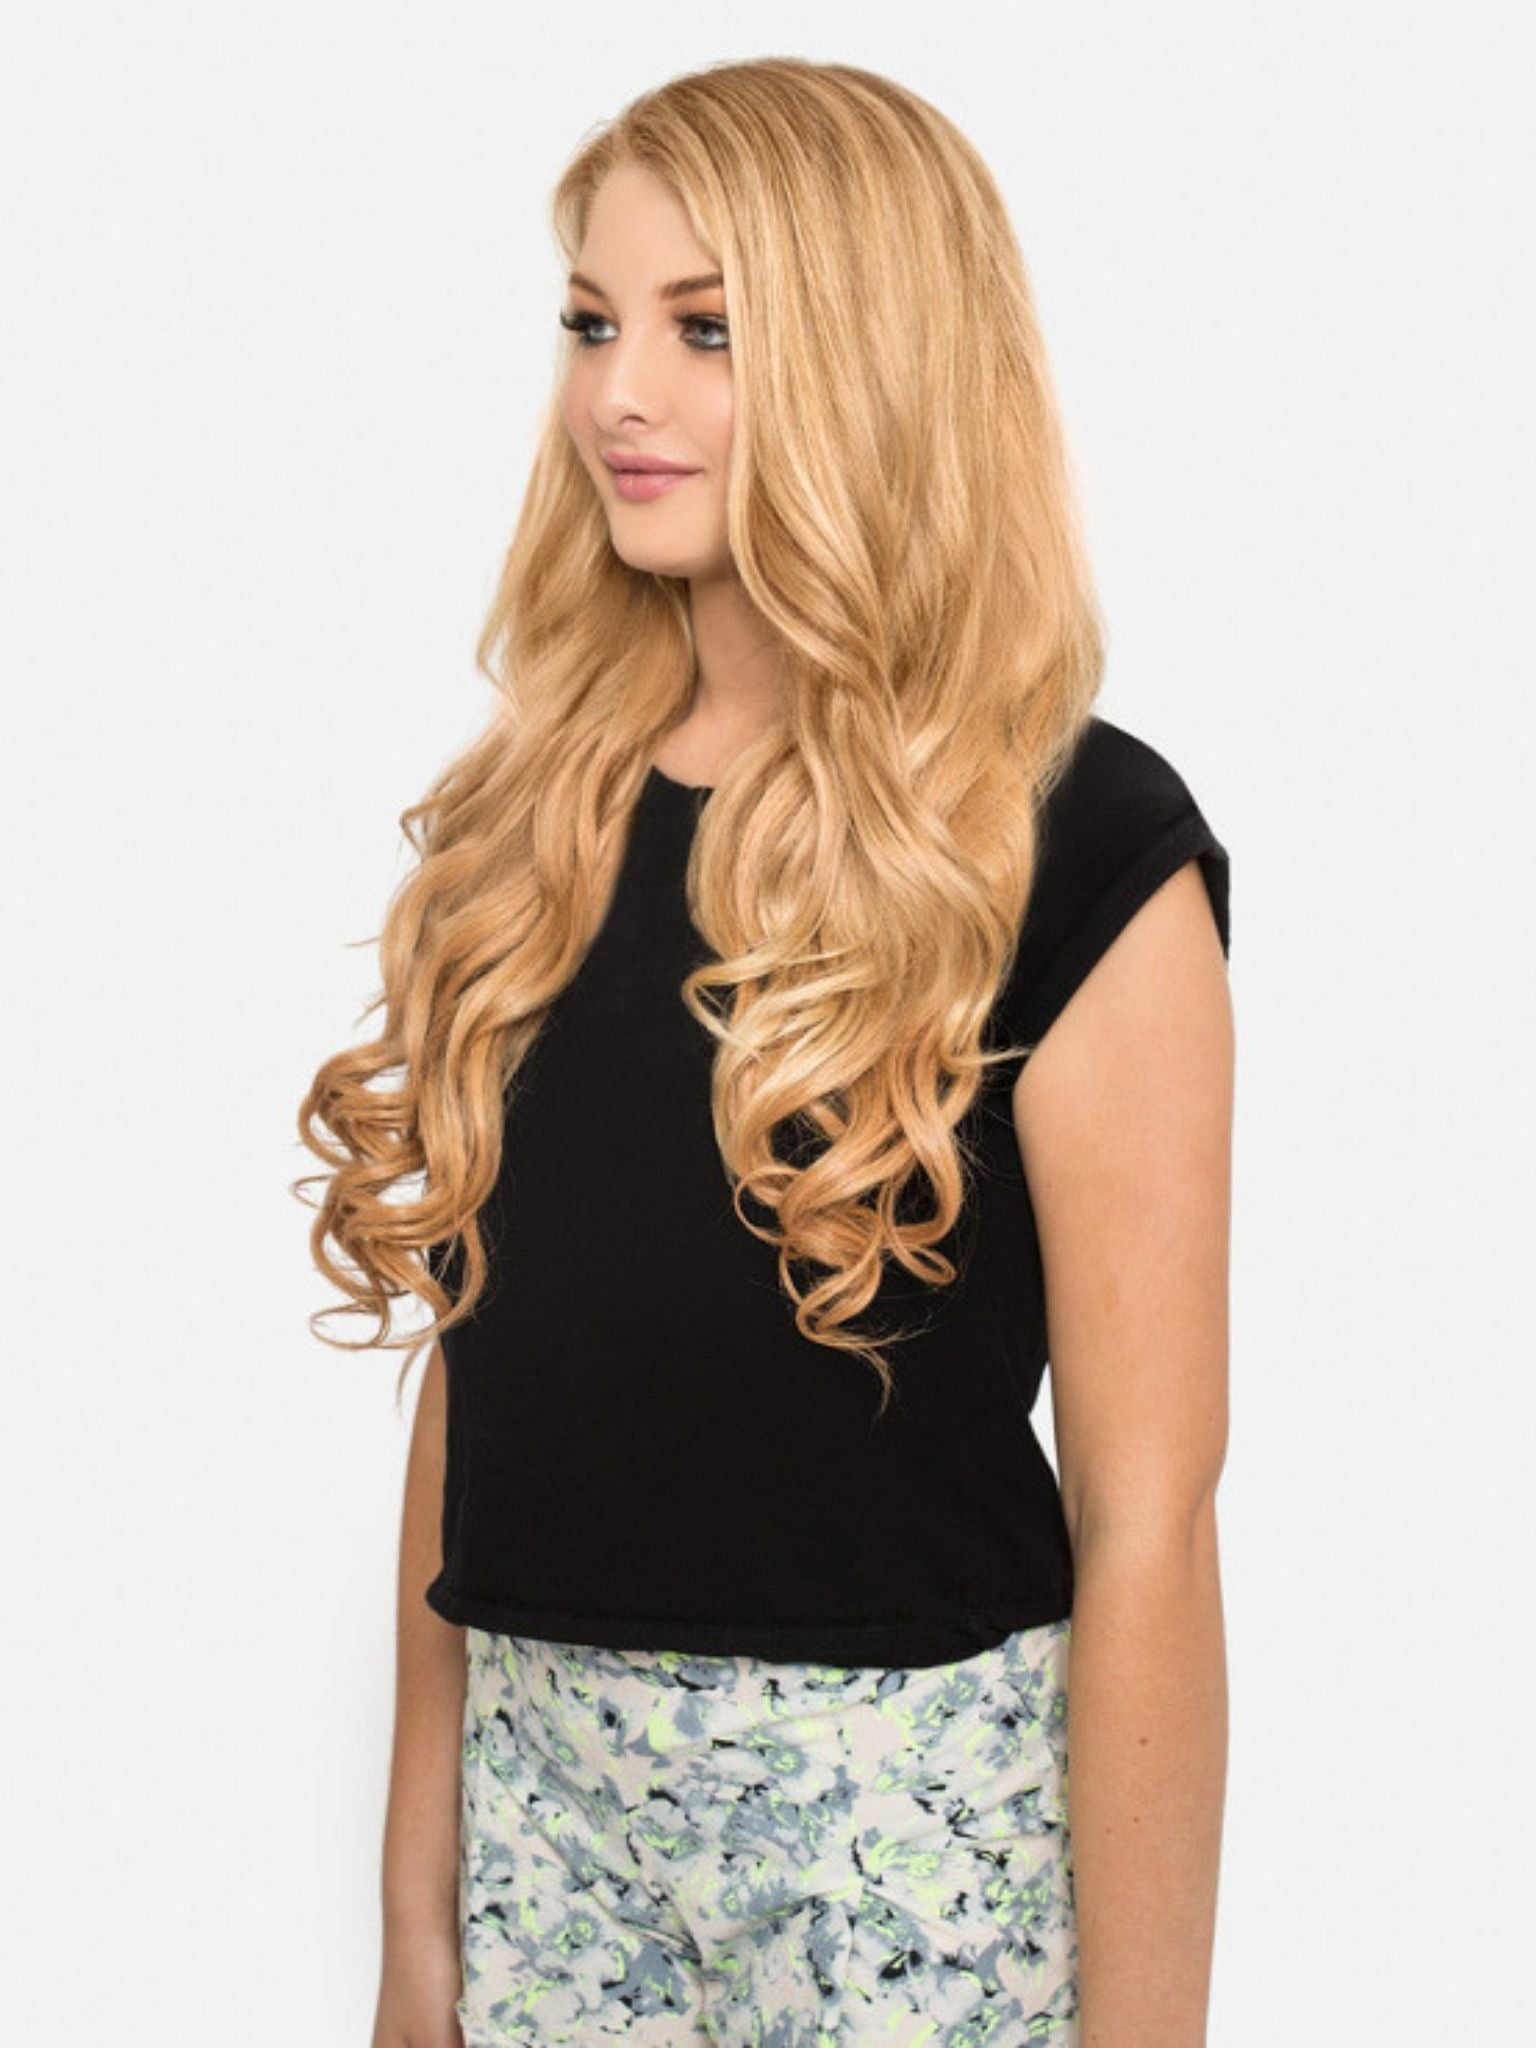 Stick Tip Hair Extensions - Strawberry Blonde #16